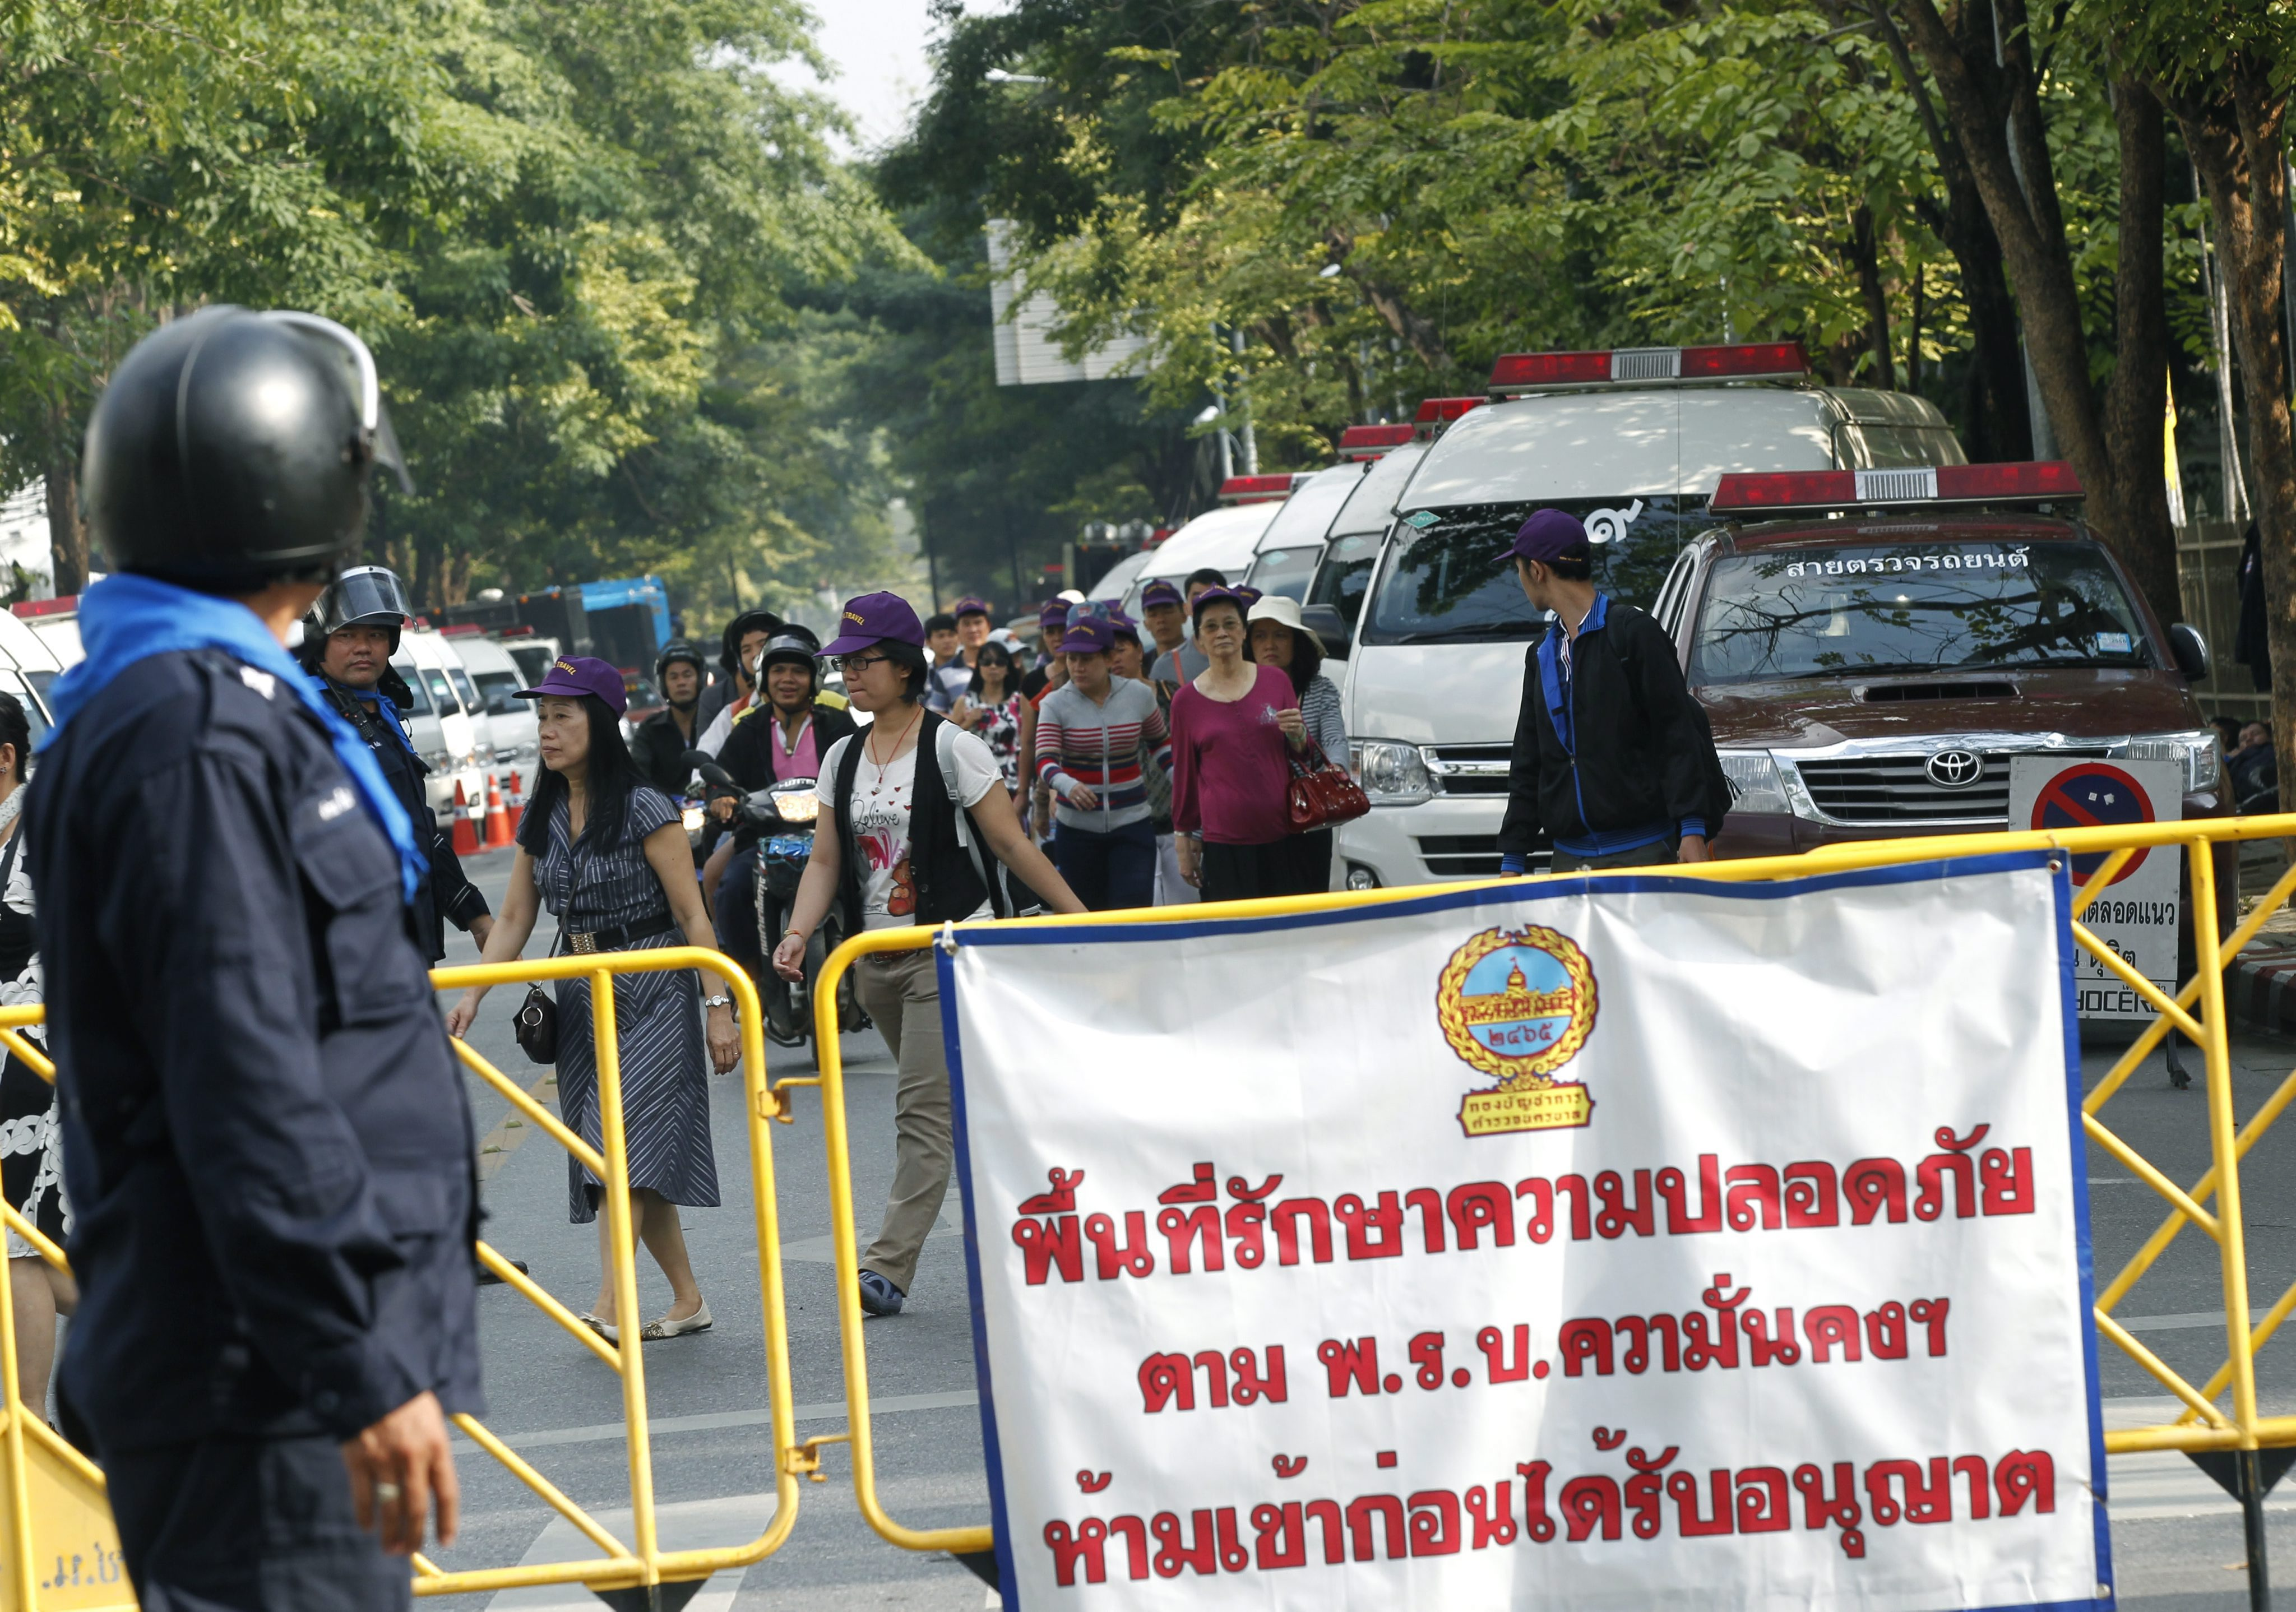 is thailand safe for tourists